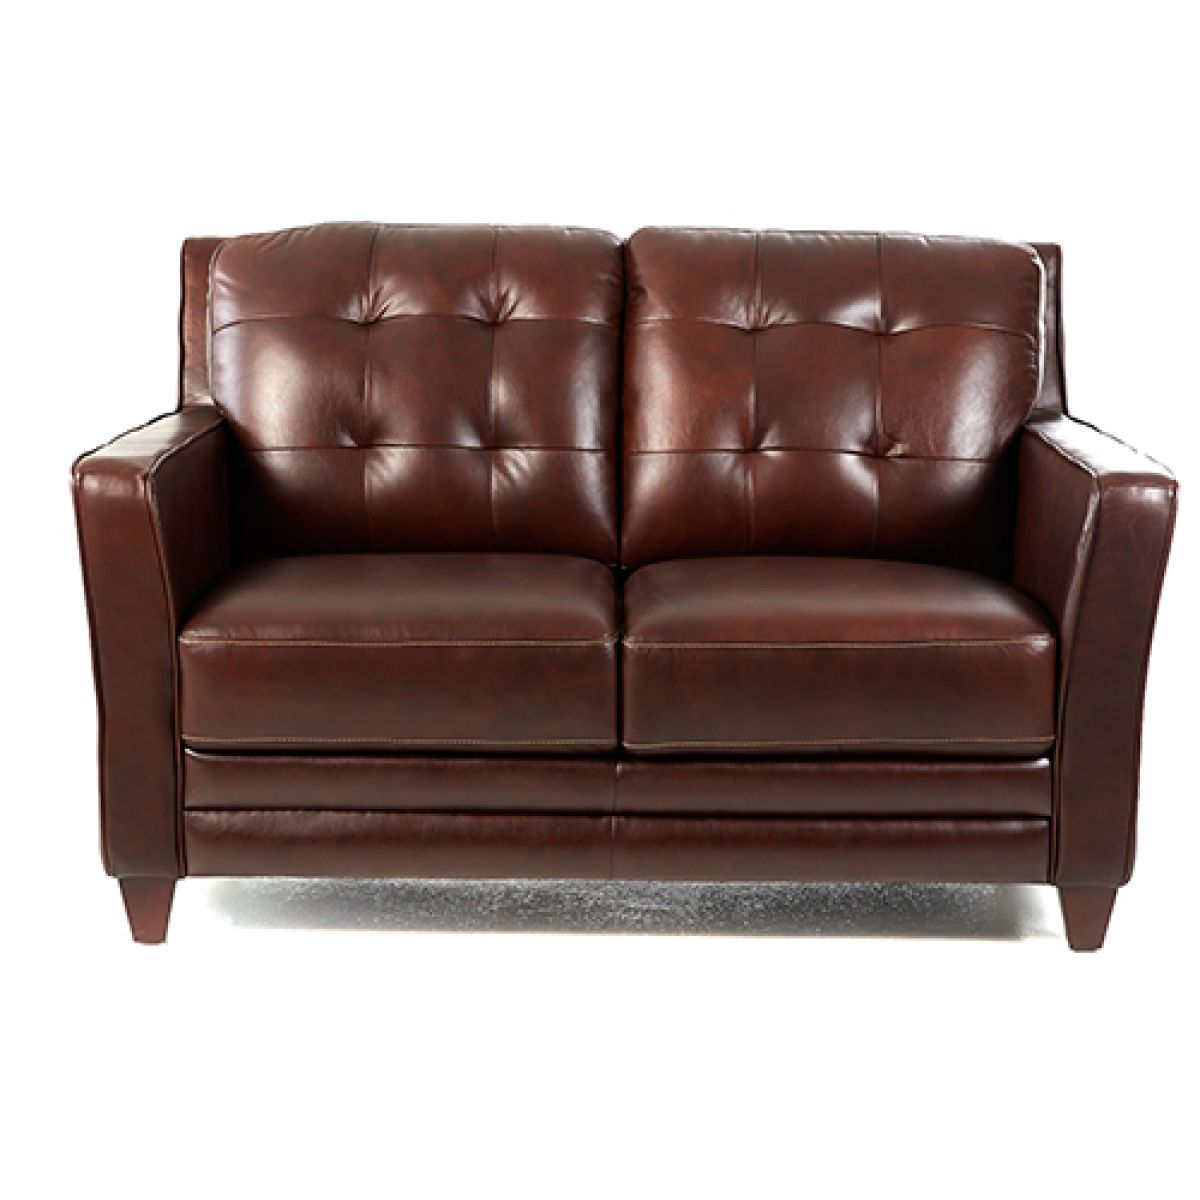 Stupendous La Z Boy Lark Loveseat Boscovs Family Room Redo La Z Gmtry Best Dining Table And Chair Ideas Images Gmtryco